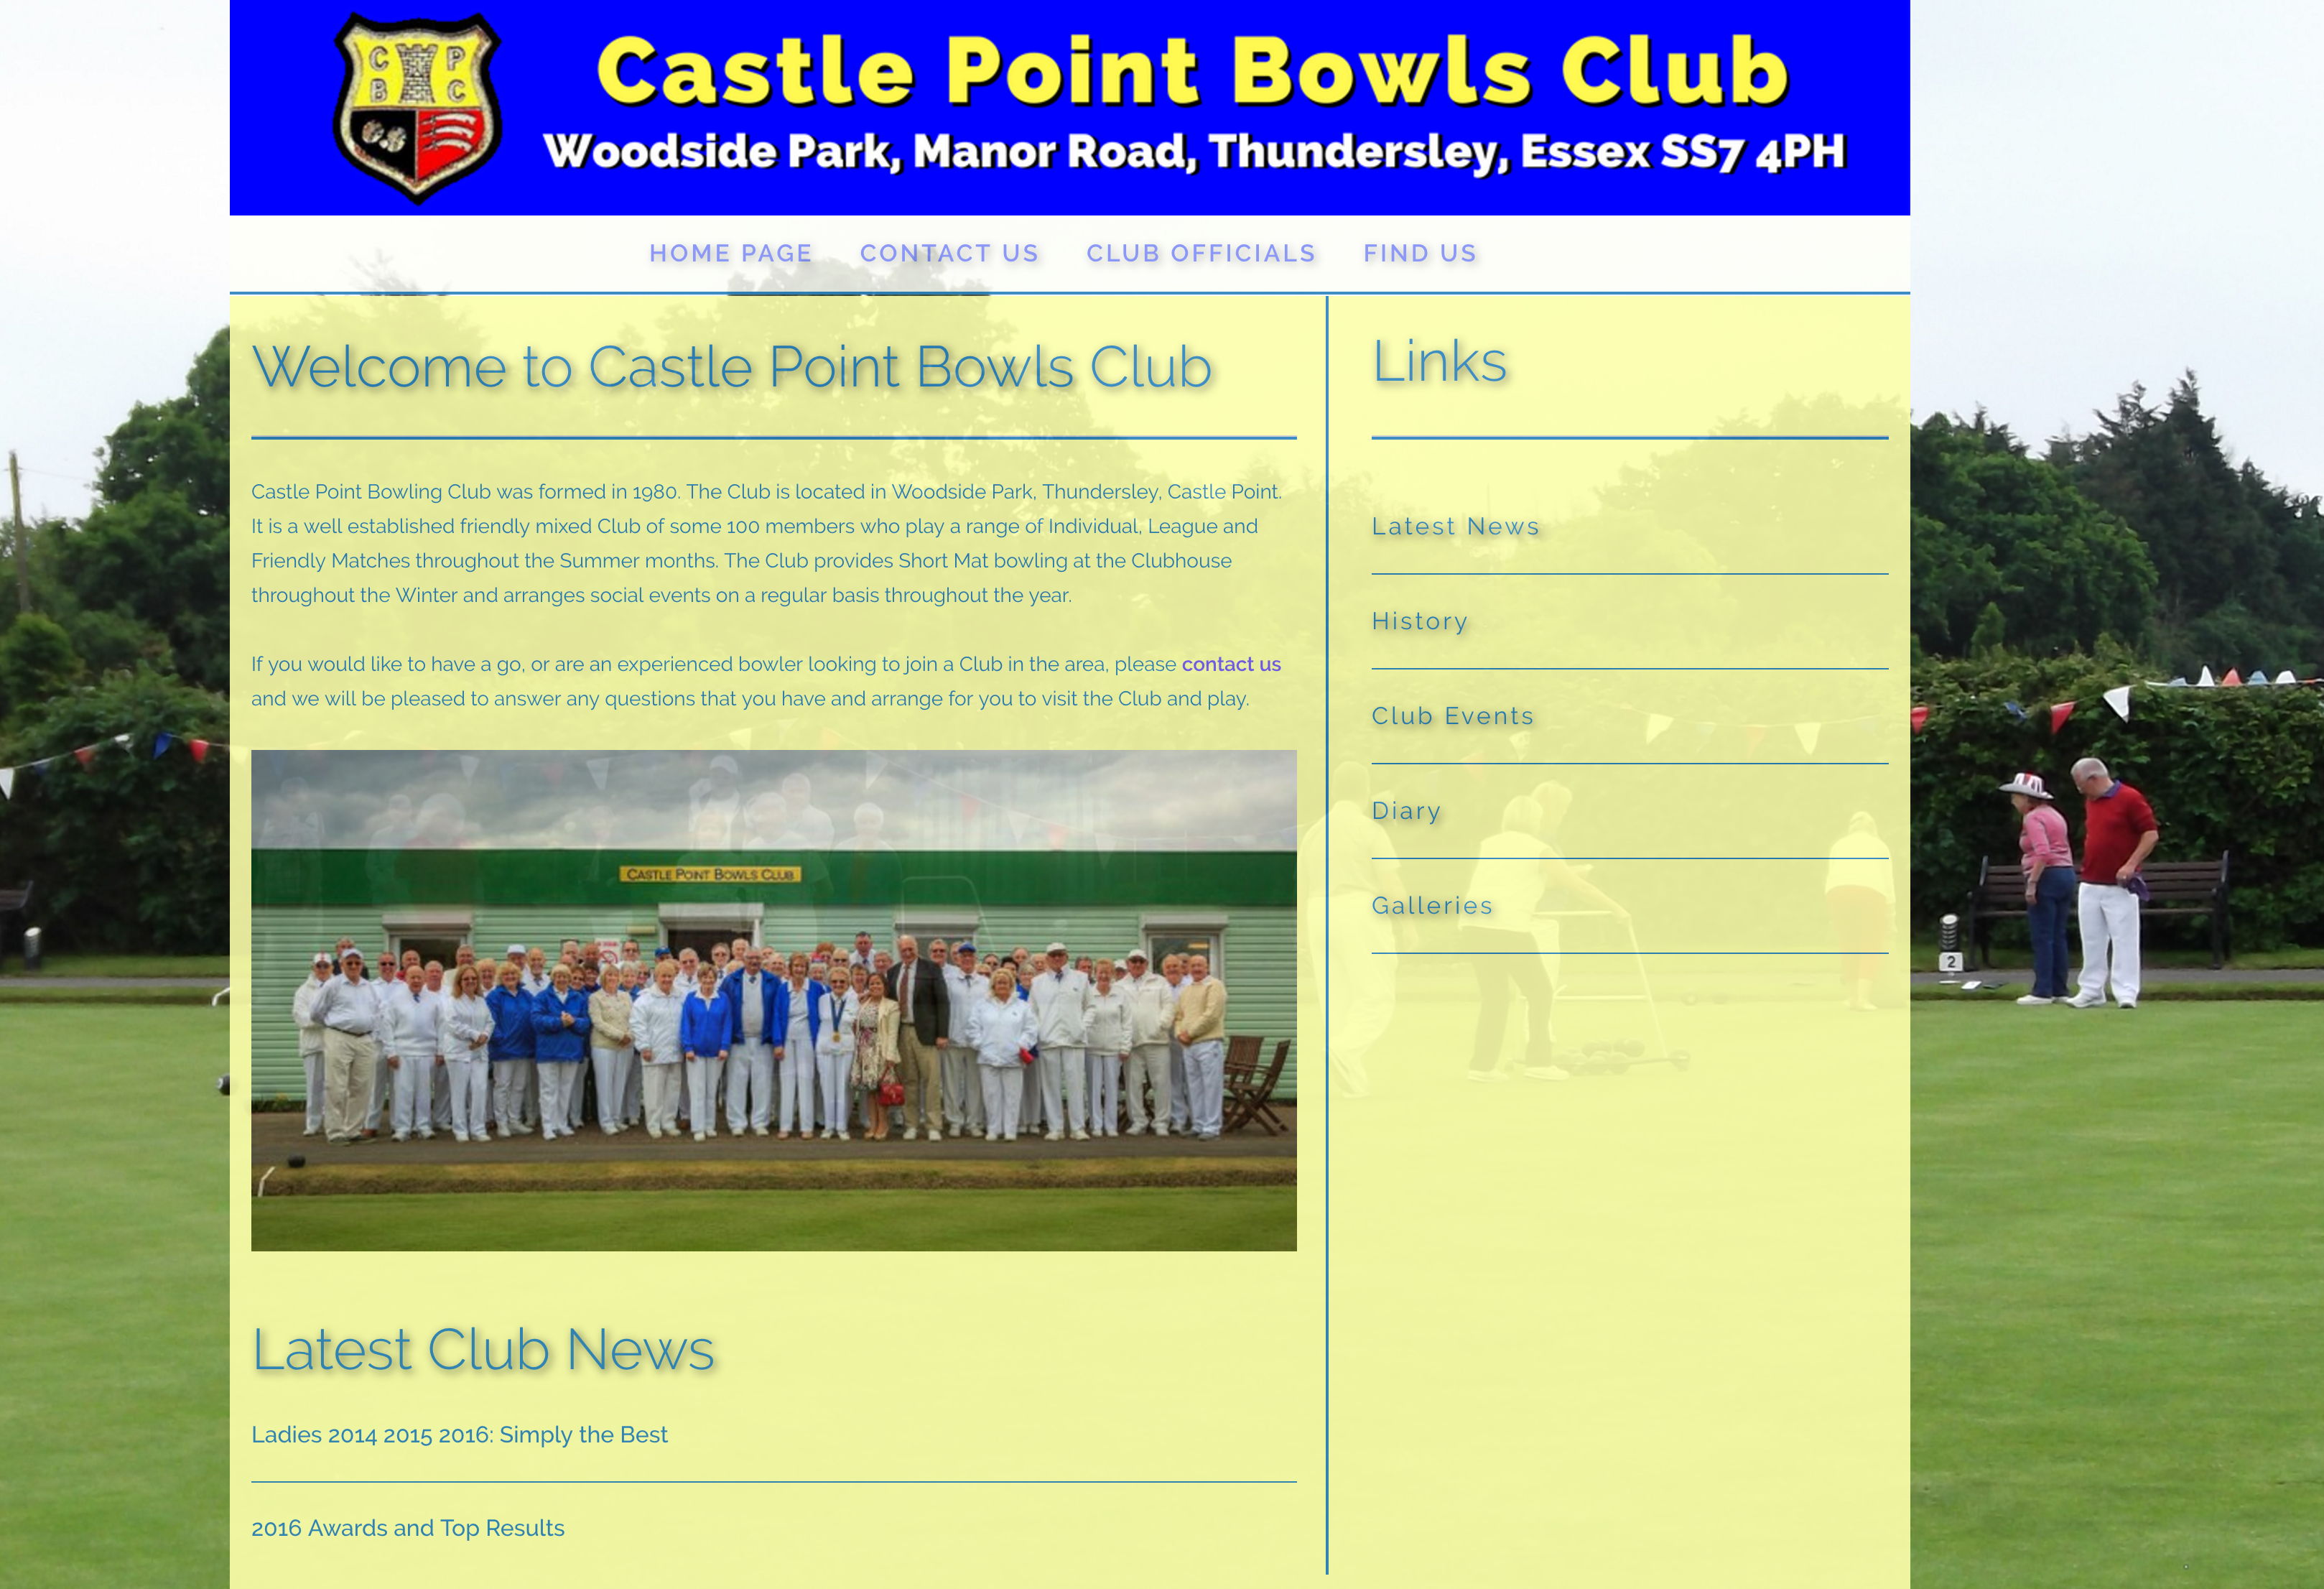 Castle Point Bowls Club Home page image